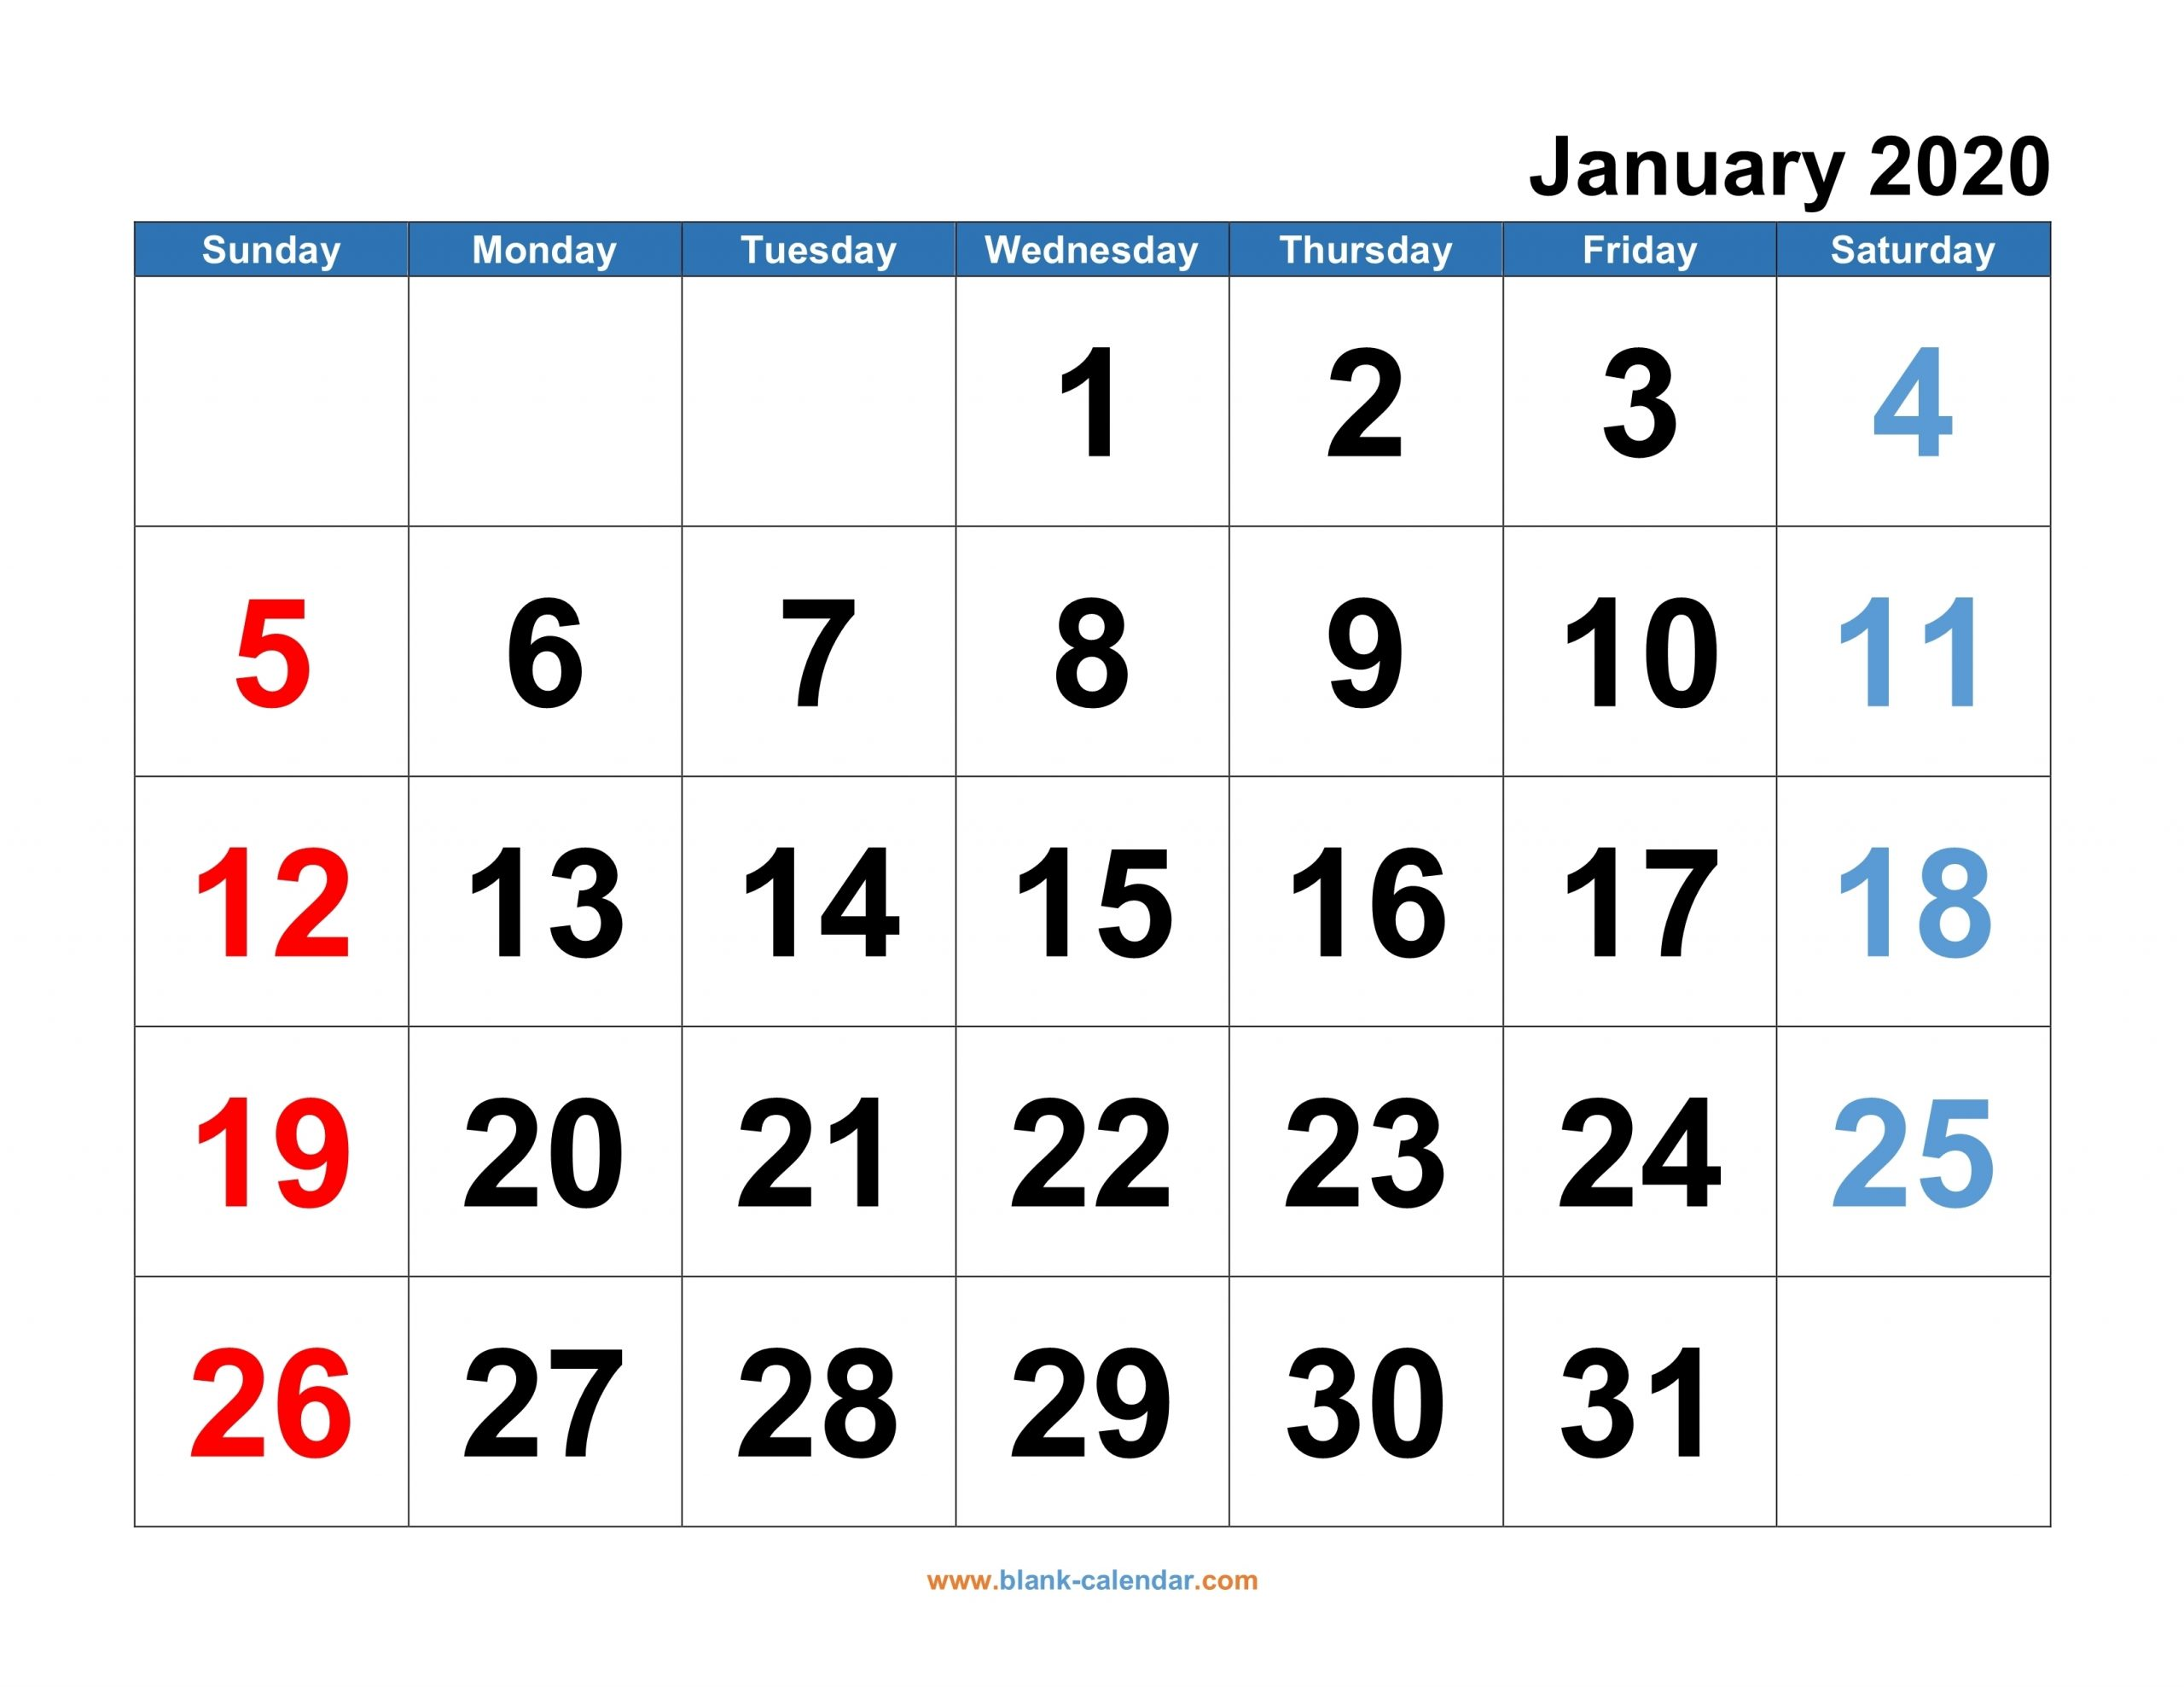 Monthly Calendar 2020 | Free Download, Editable And Printable in Blank Calendars With Days Of The Week Not Numbered